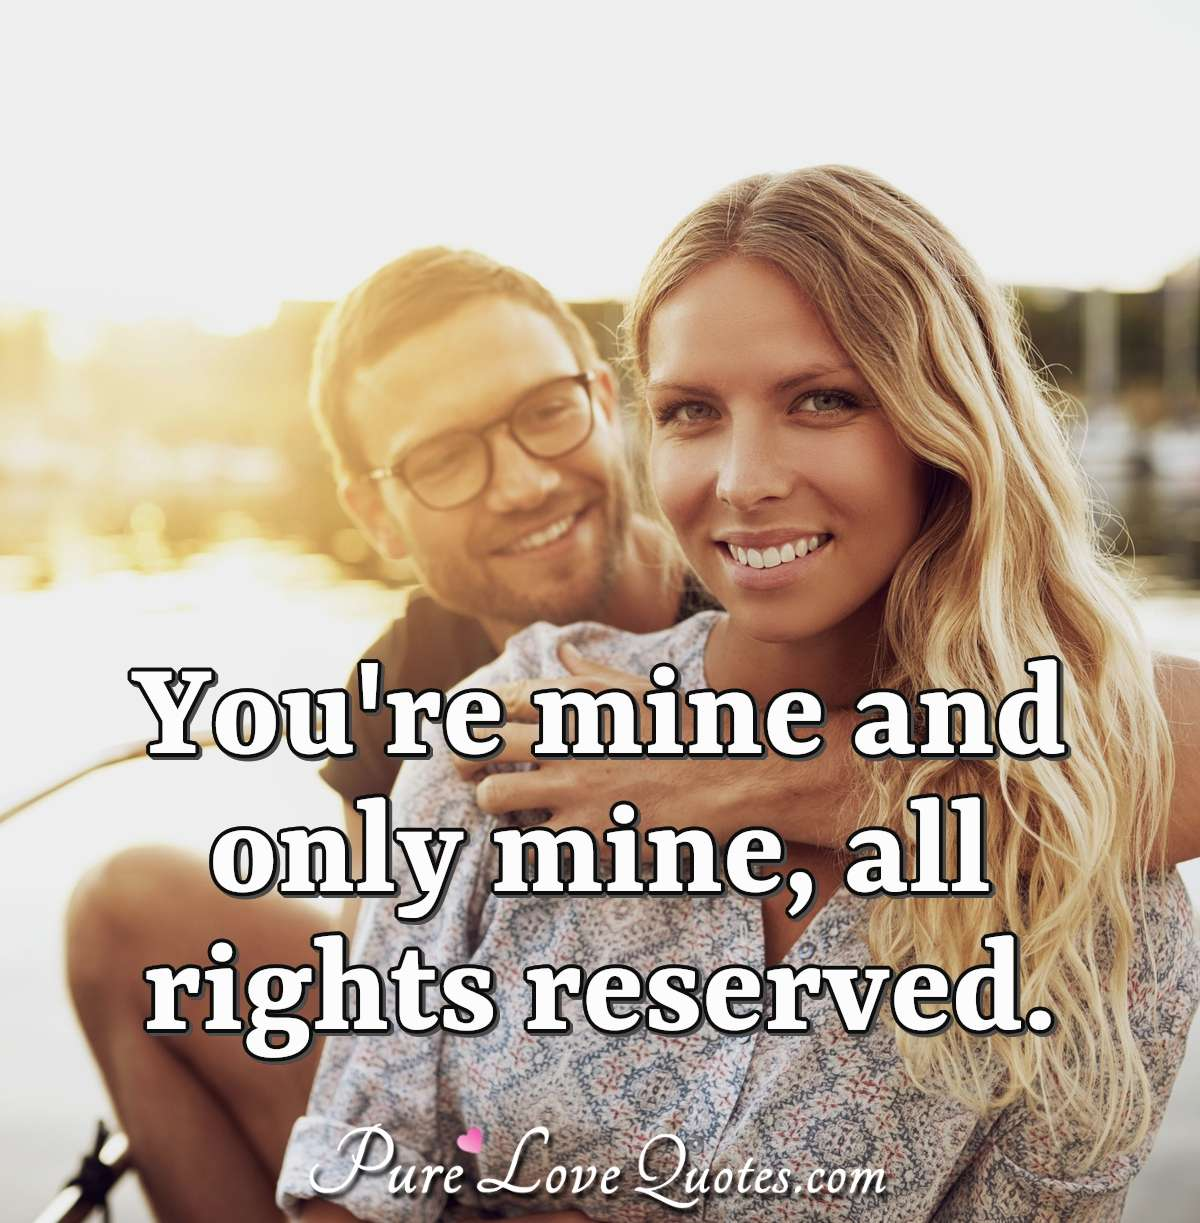 You're mine and only mine, all rights reserved. - Anonymous